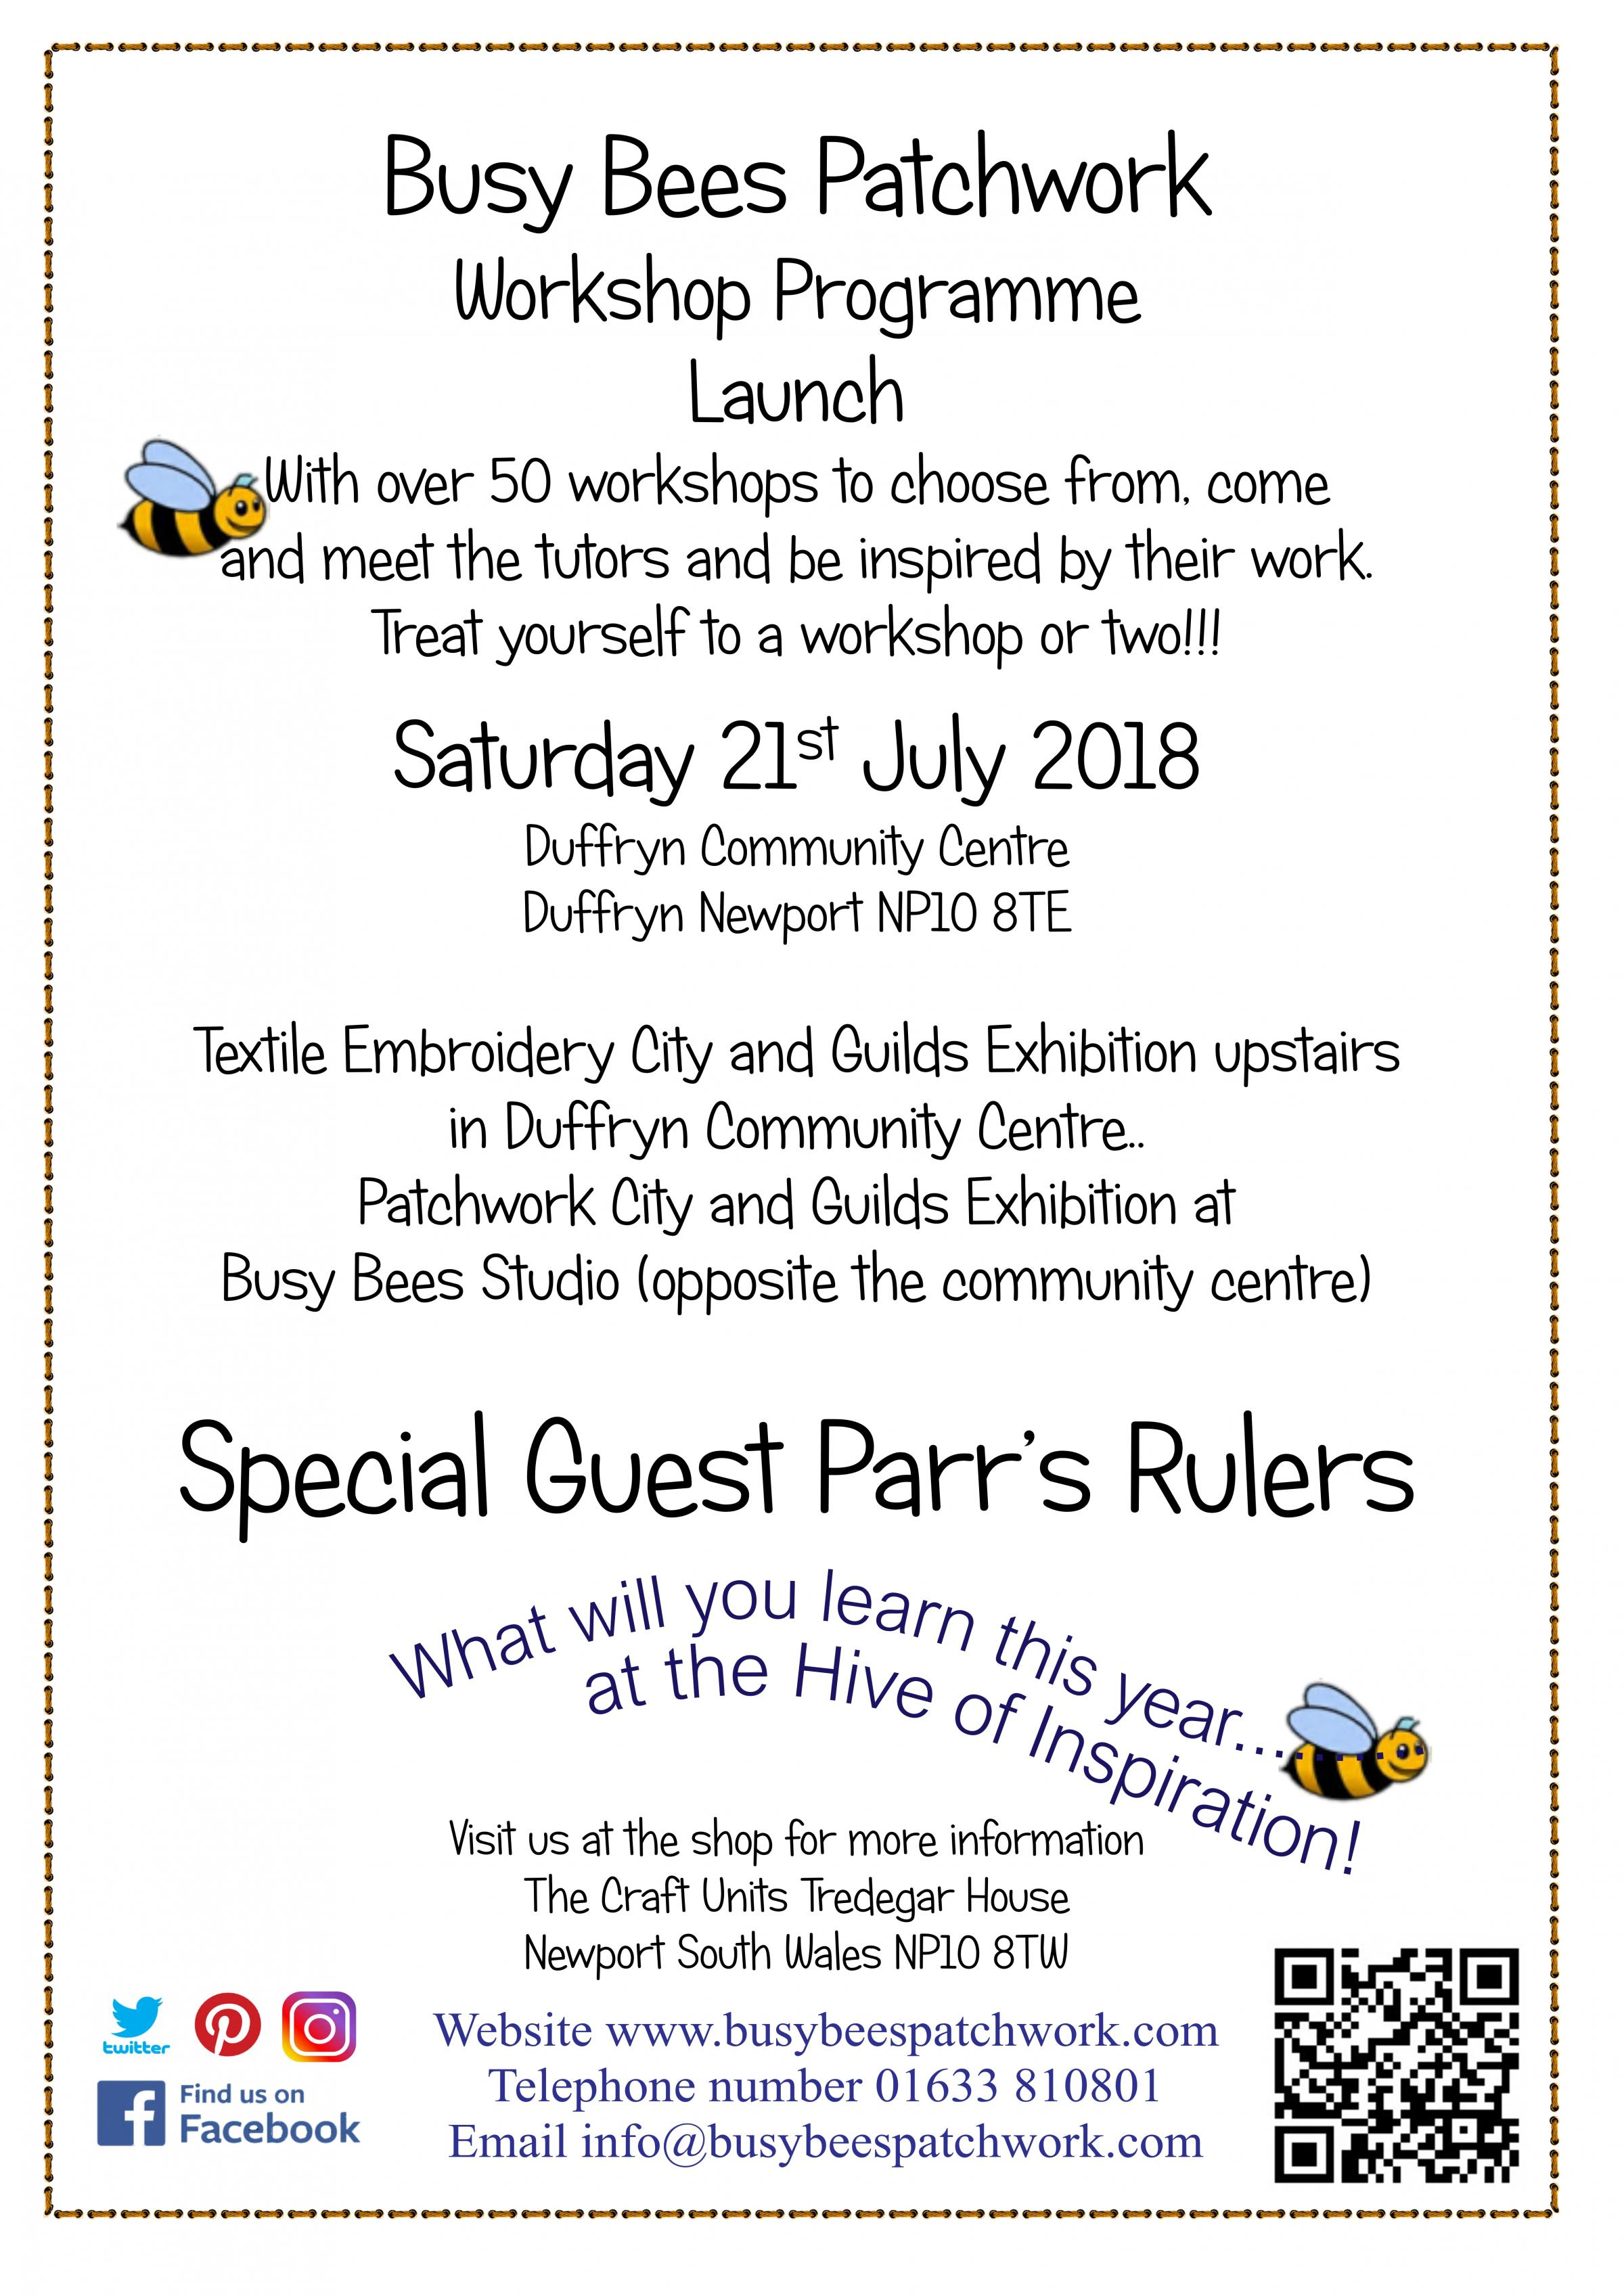 Busy Bees Patchwork Workshop Programme Launch